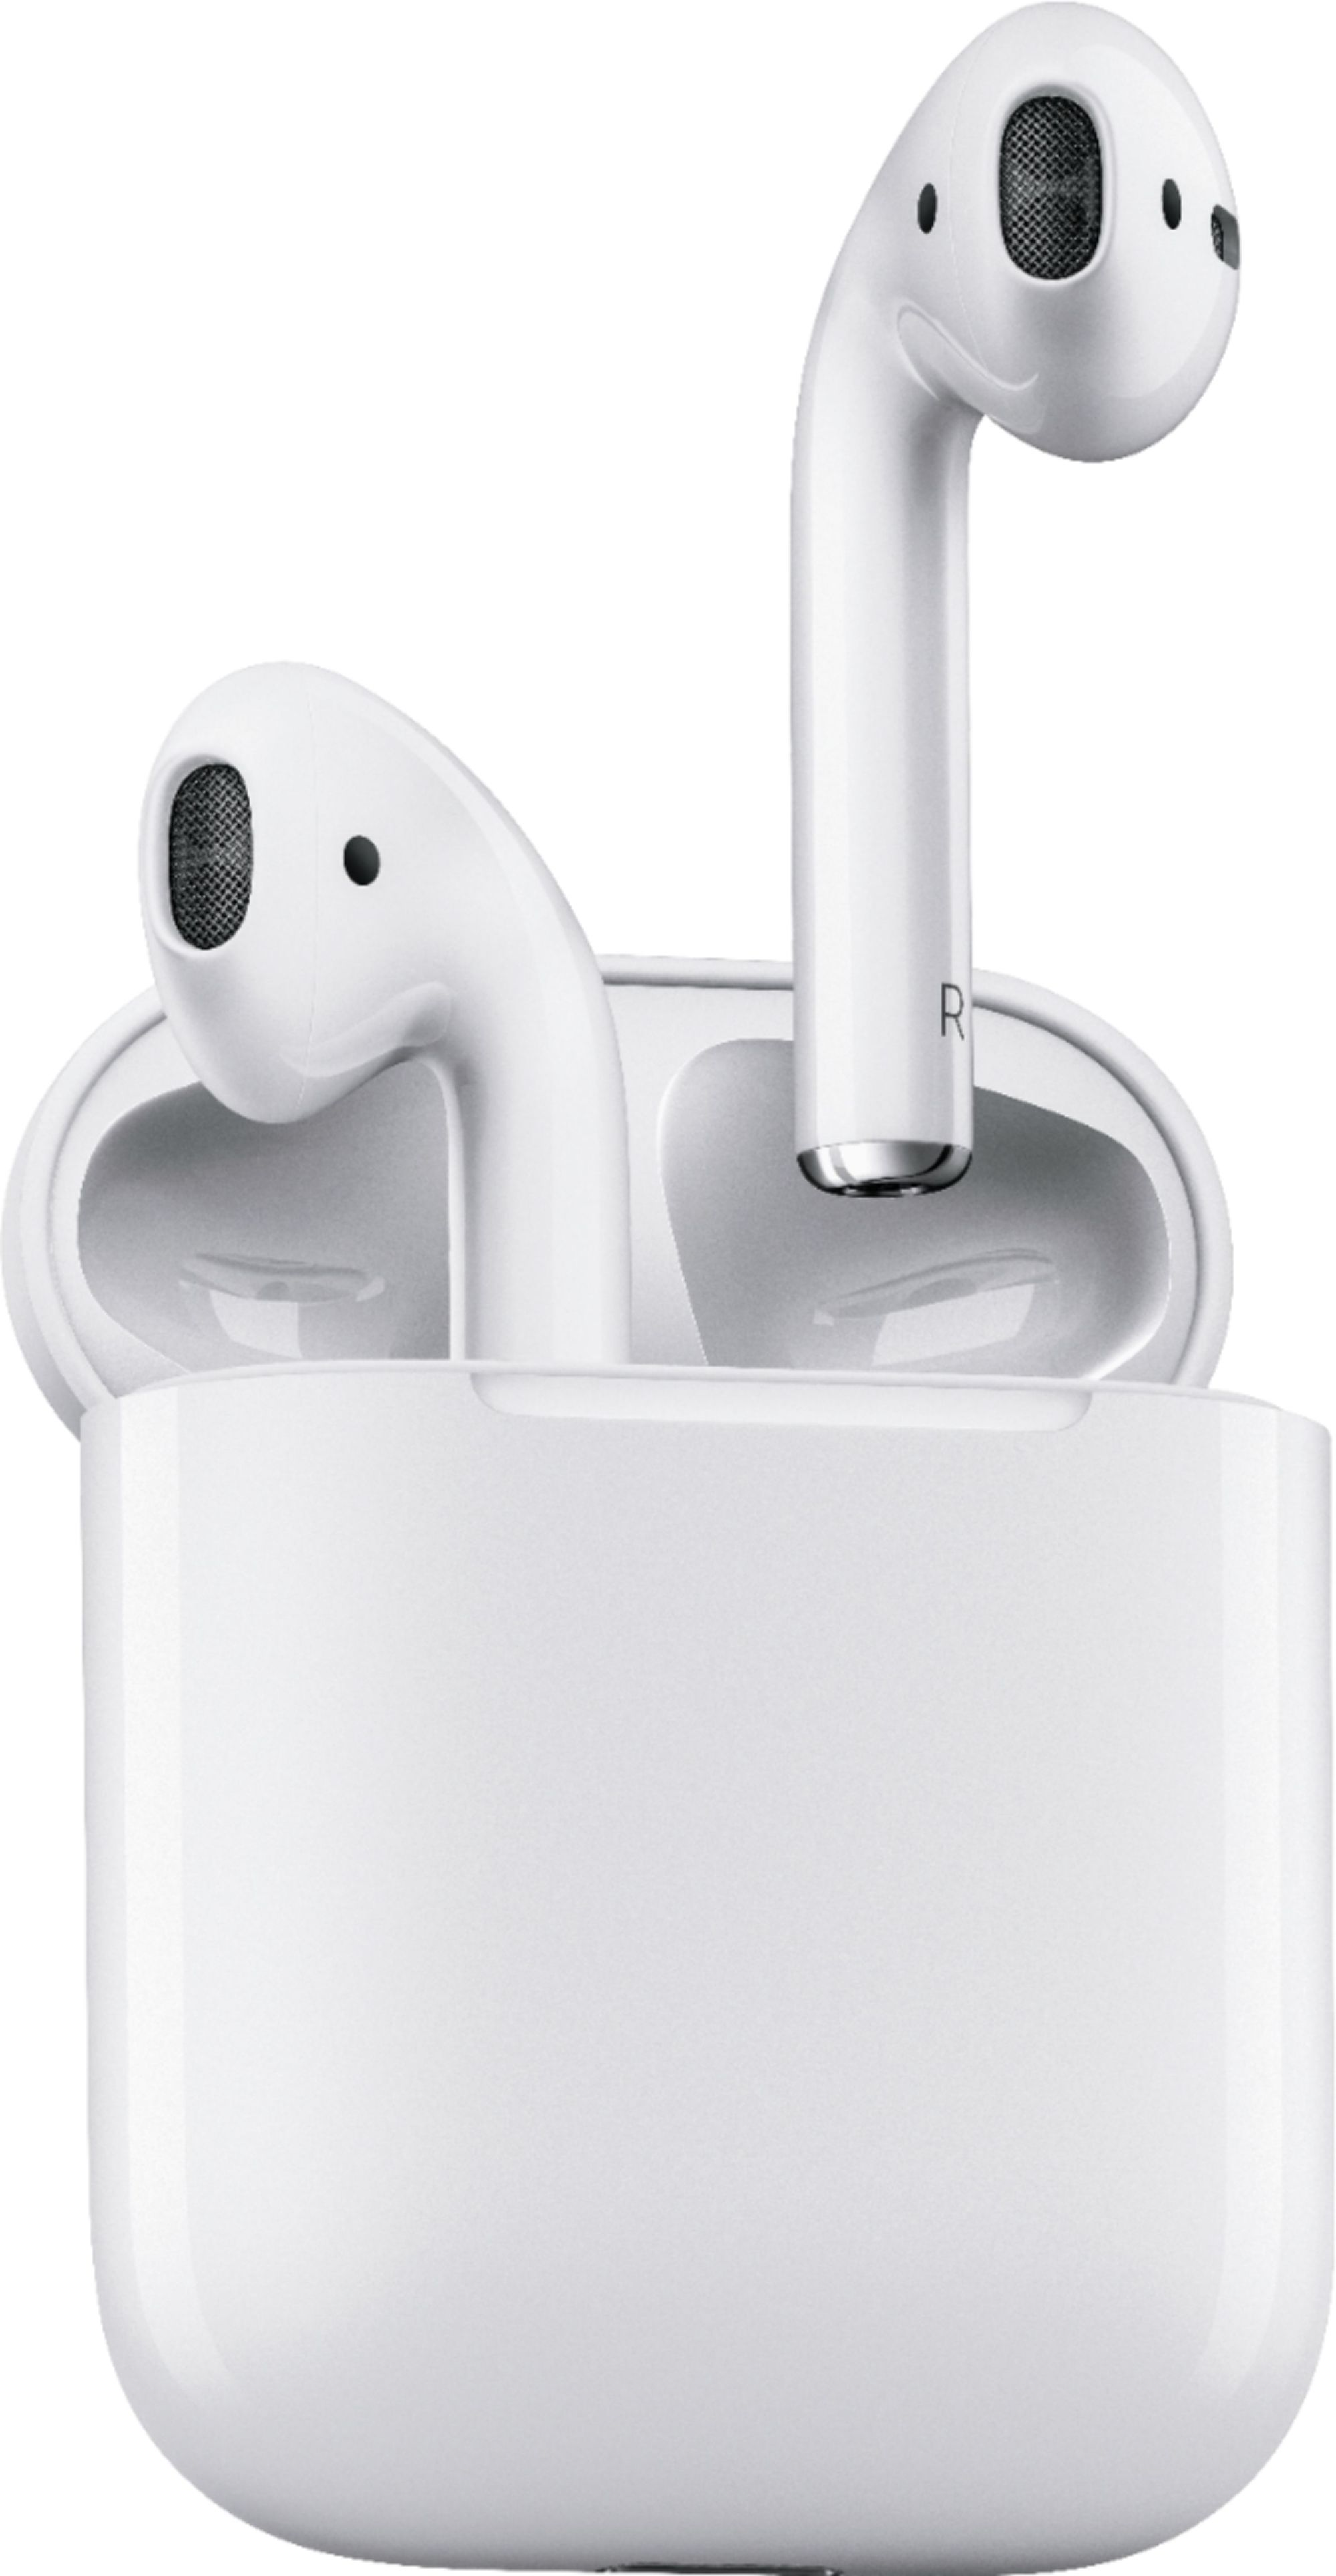 hight resolution of best buy apple airpods with charging case 1st generation white mmef2am a